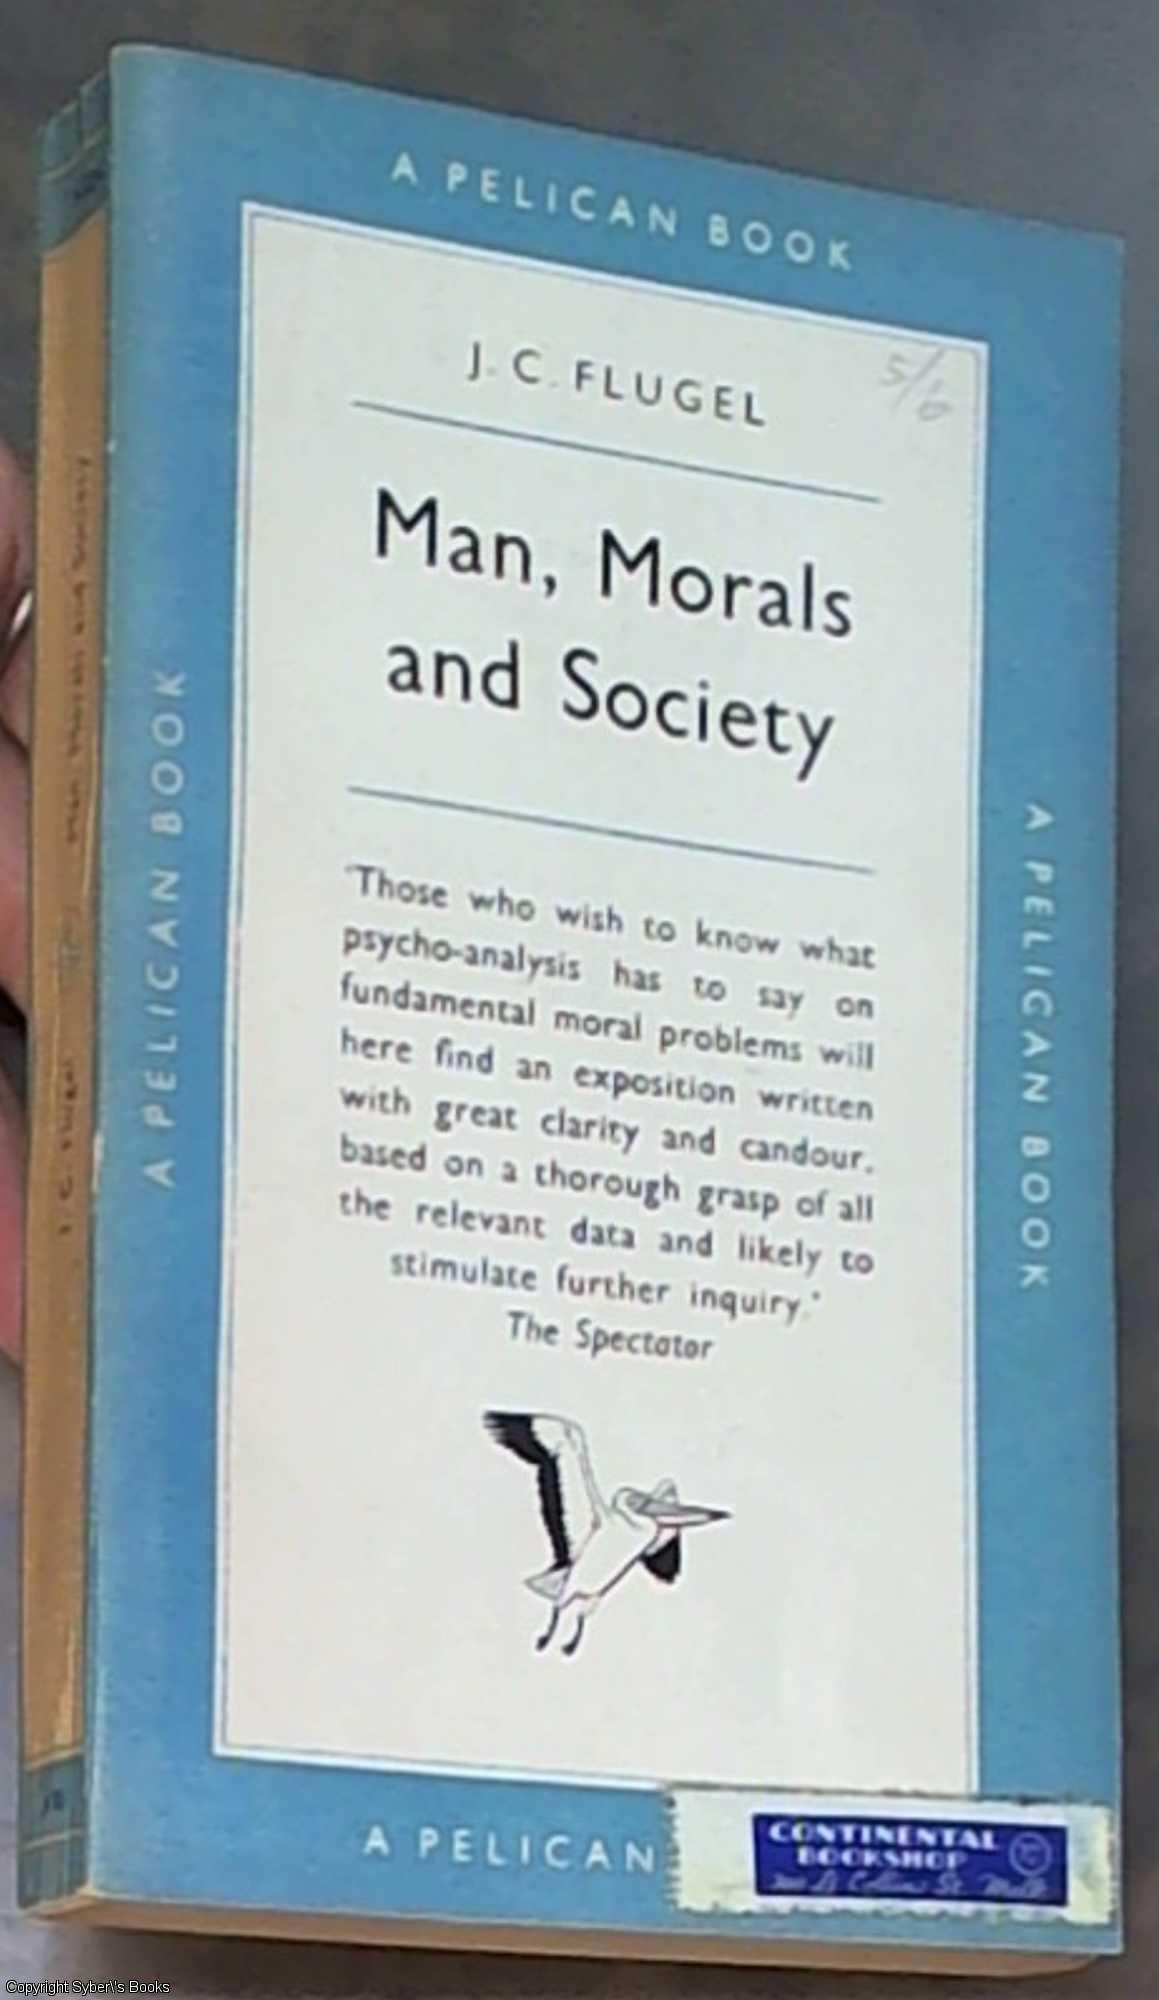 a review of niebuhrs book moral man and immoral society In the book moral man and immoral society (1932), niebuhr strongly criticized dewey's philosophy, although his own ideas were still intellectually inchoate two years later, in a review of dewey's book a common faith (1934), niebuhr was calm and respectful towards dewey's religious footnote on his then large body of educational and pragmatic philosophy.